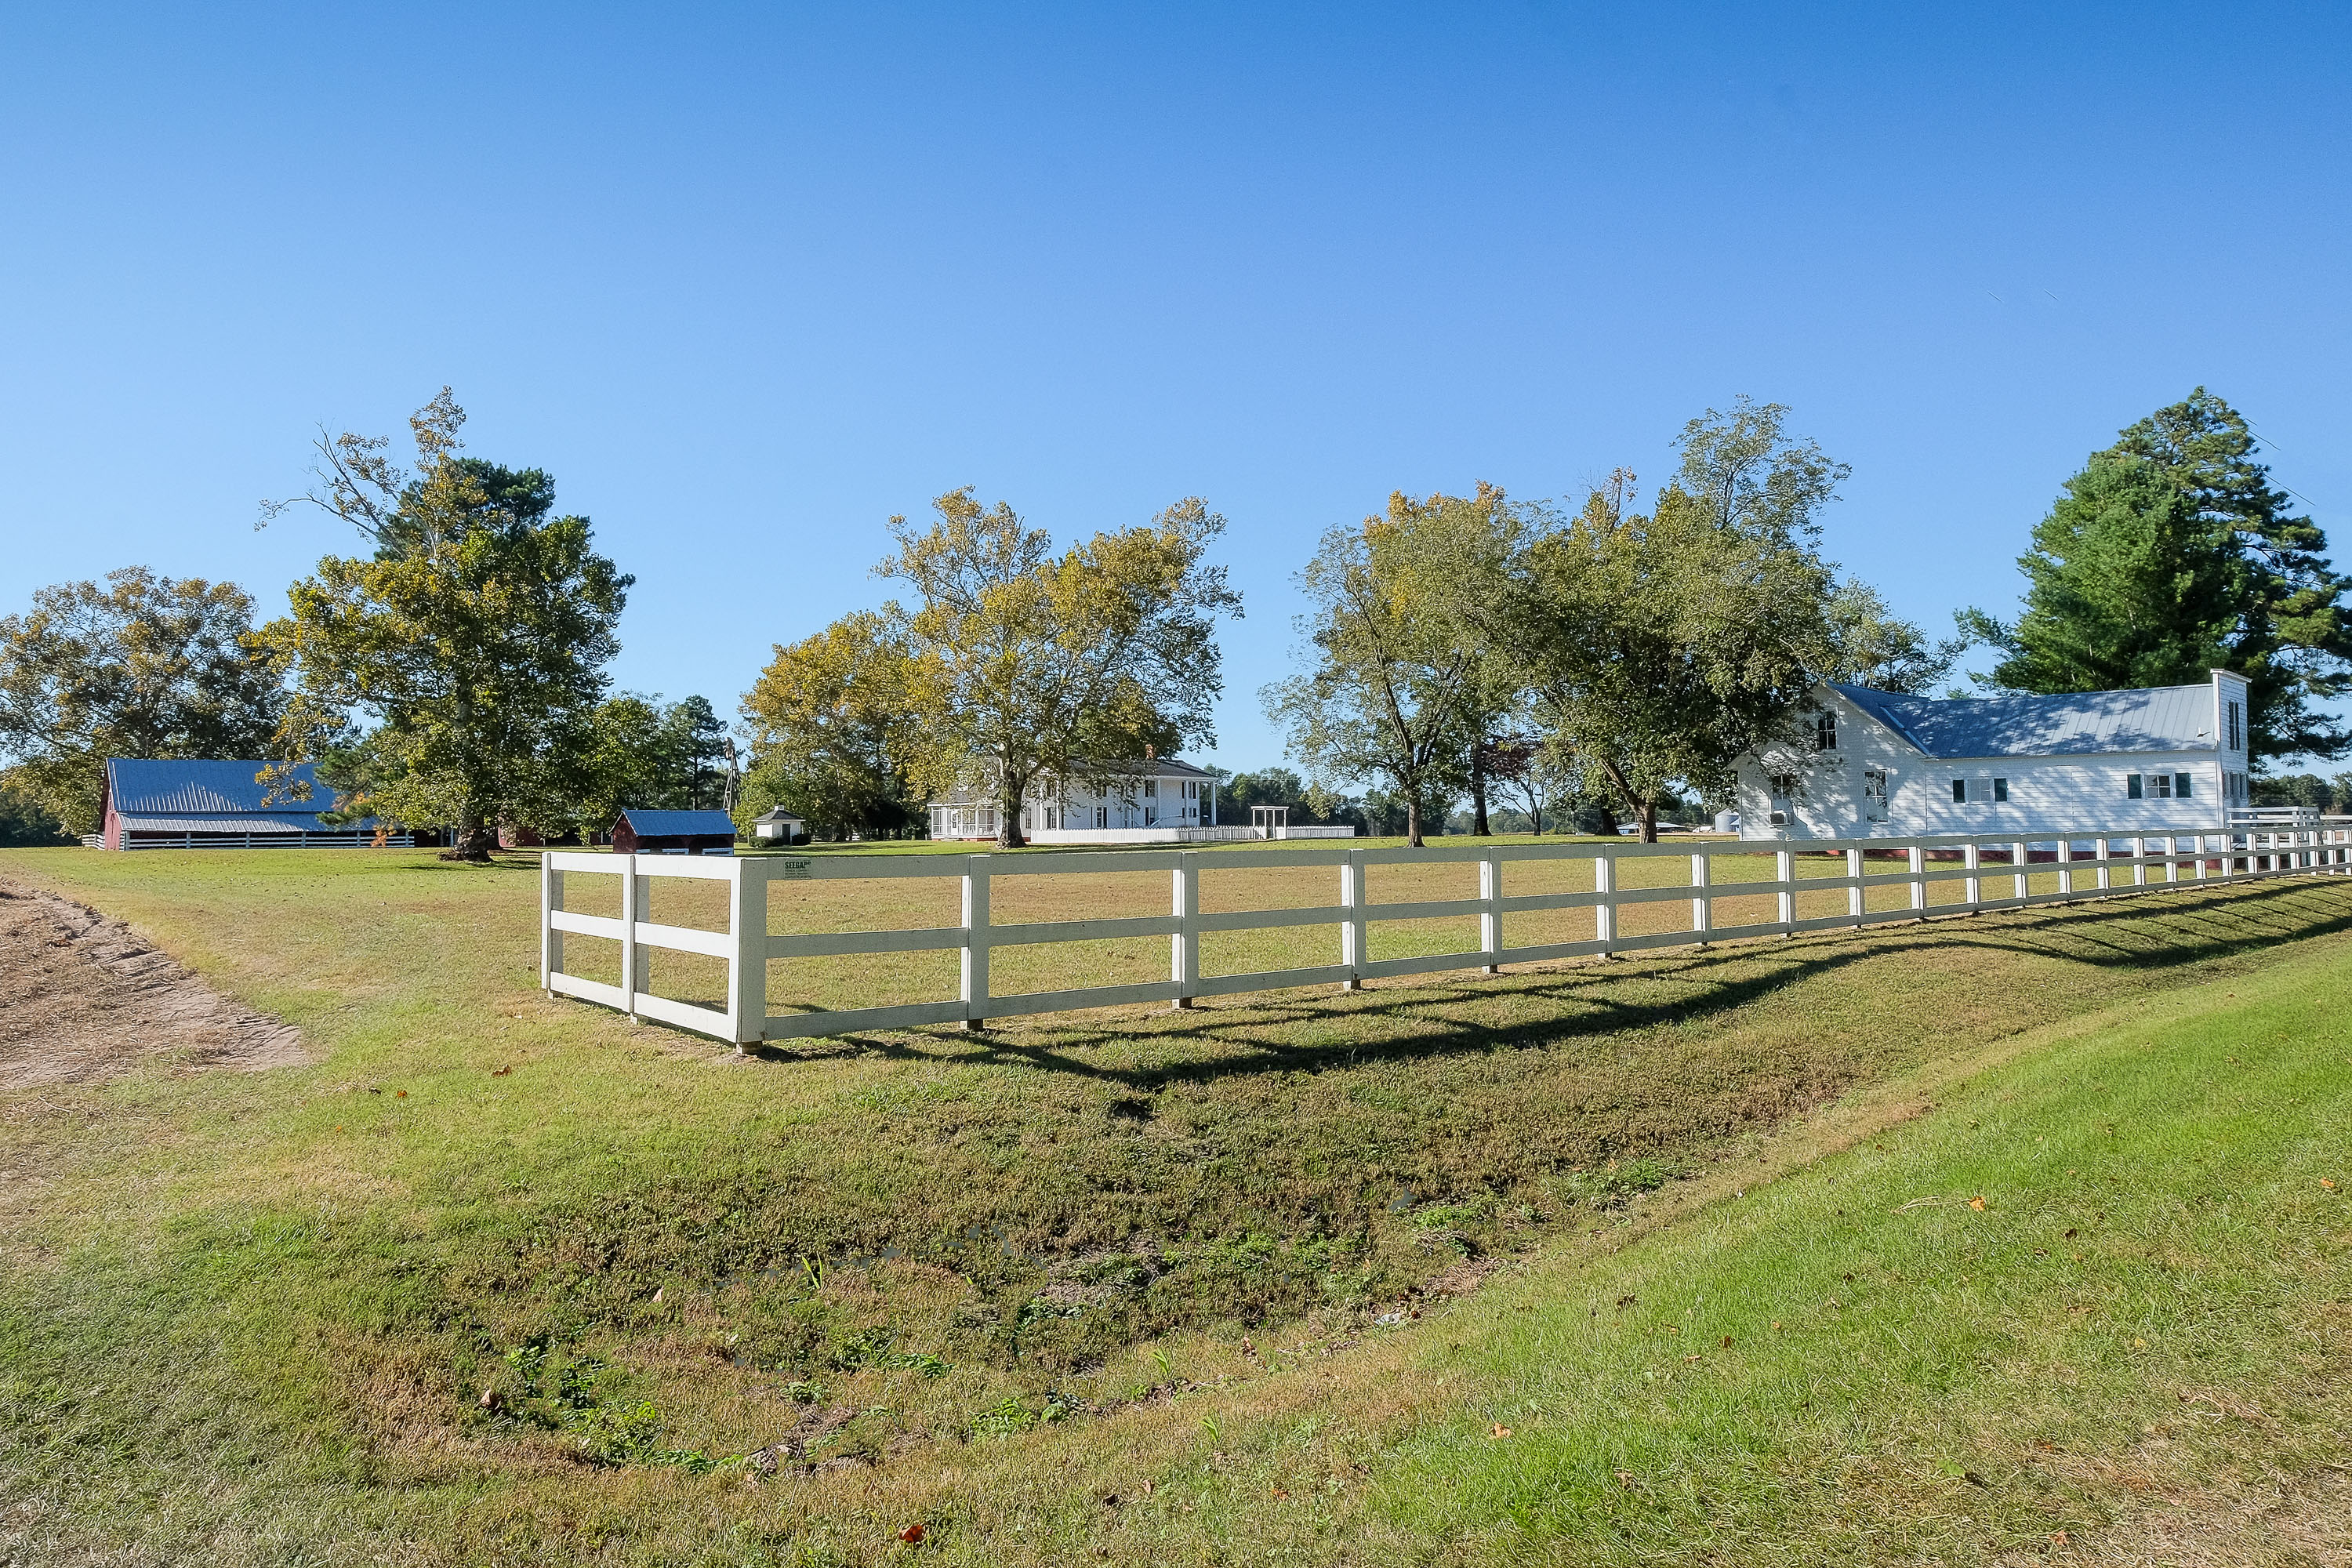 獨棟家庭住宅 為 出售 在 Gracious, Farm Property-Endless Possibilities 321 Riverby Farm Road Edenton, 北卡羅來納州, 27932 美國